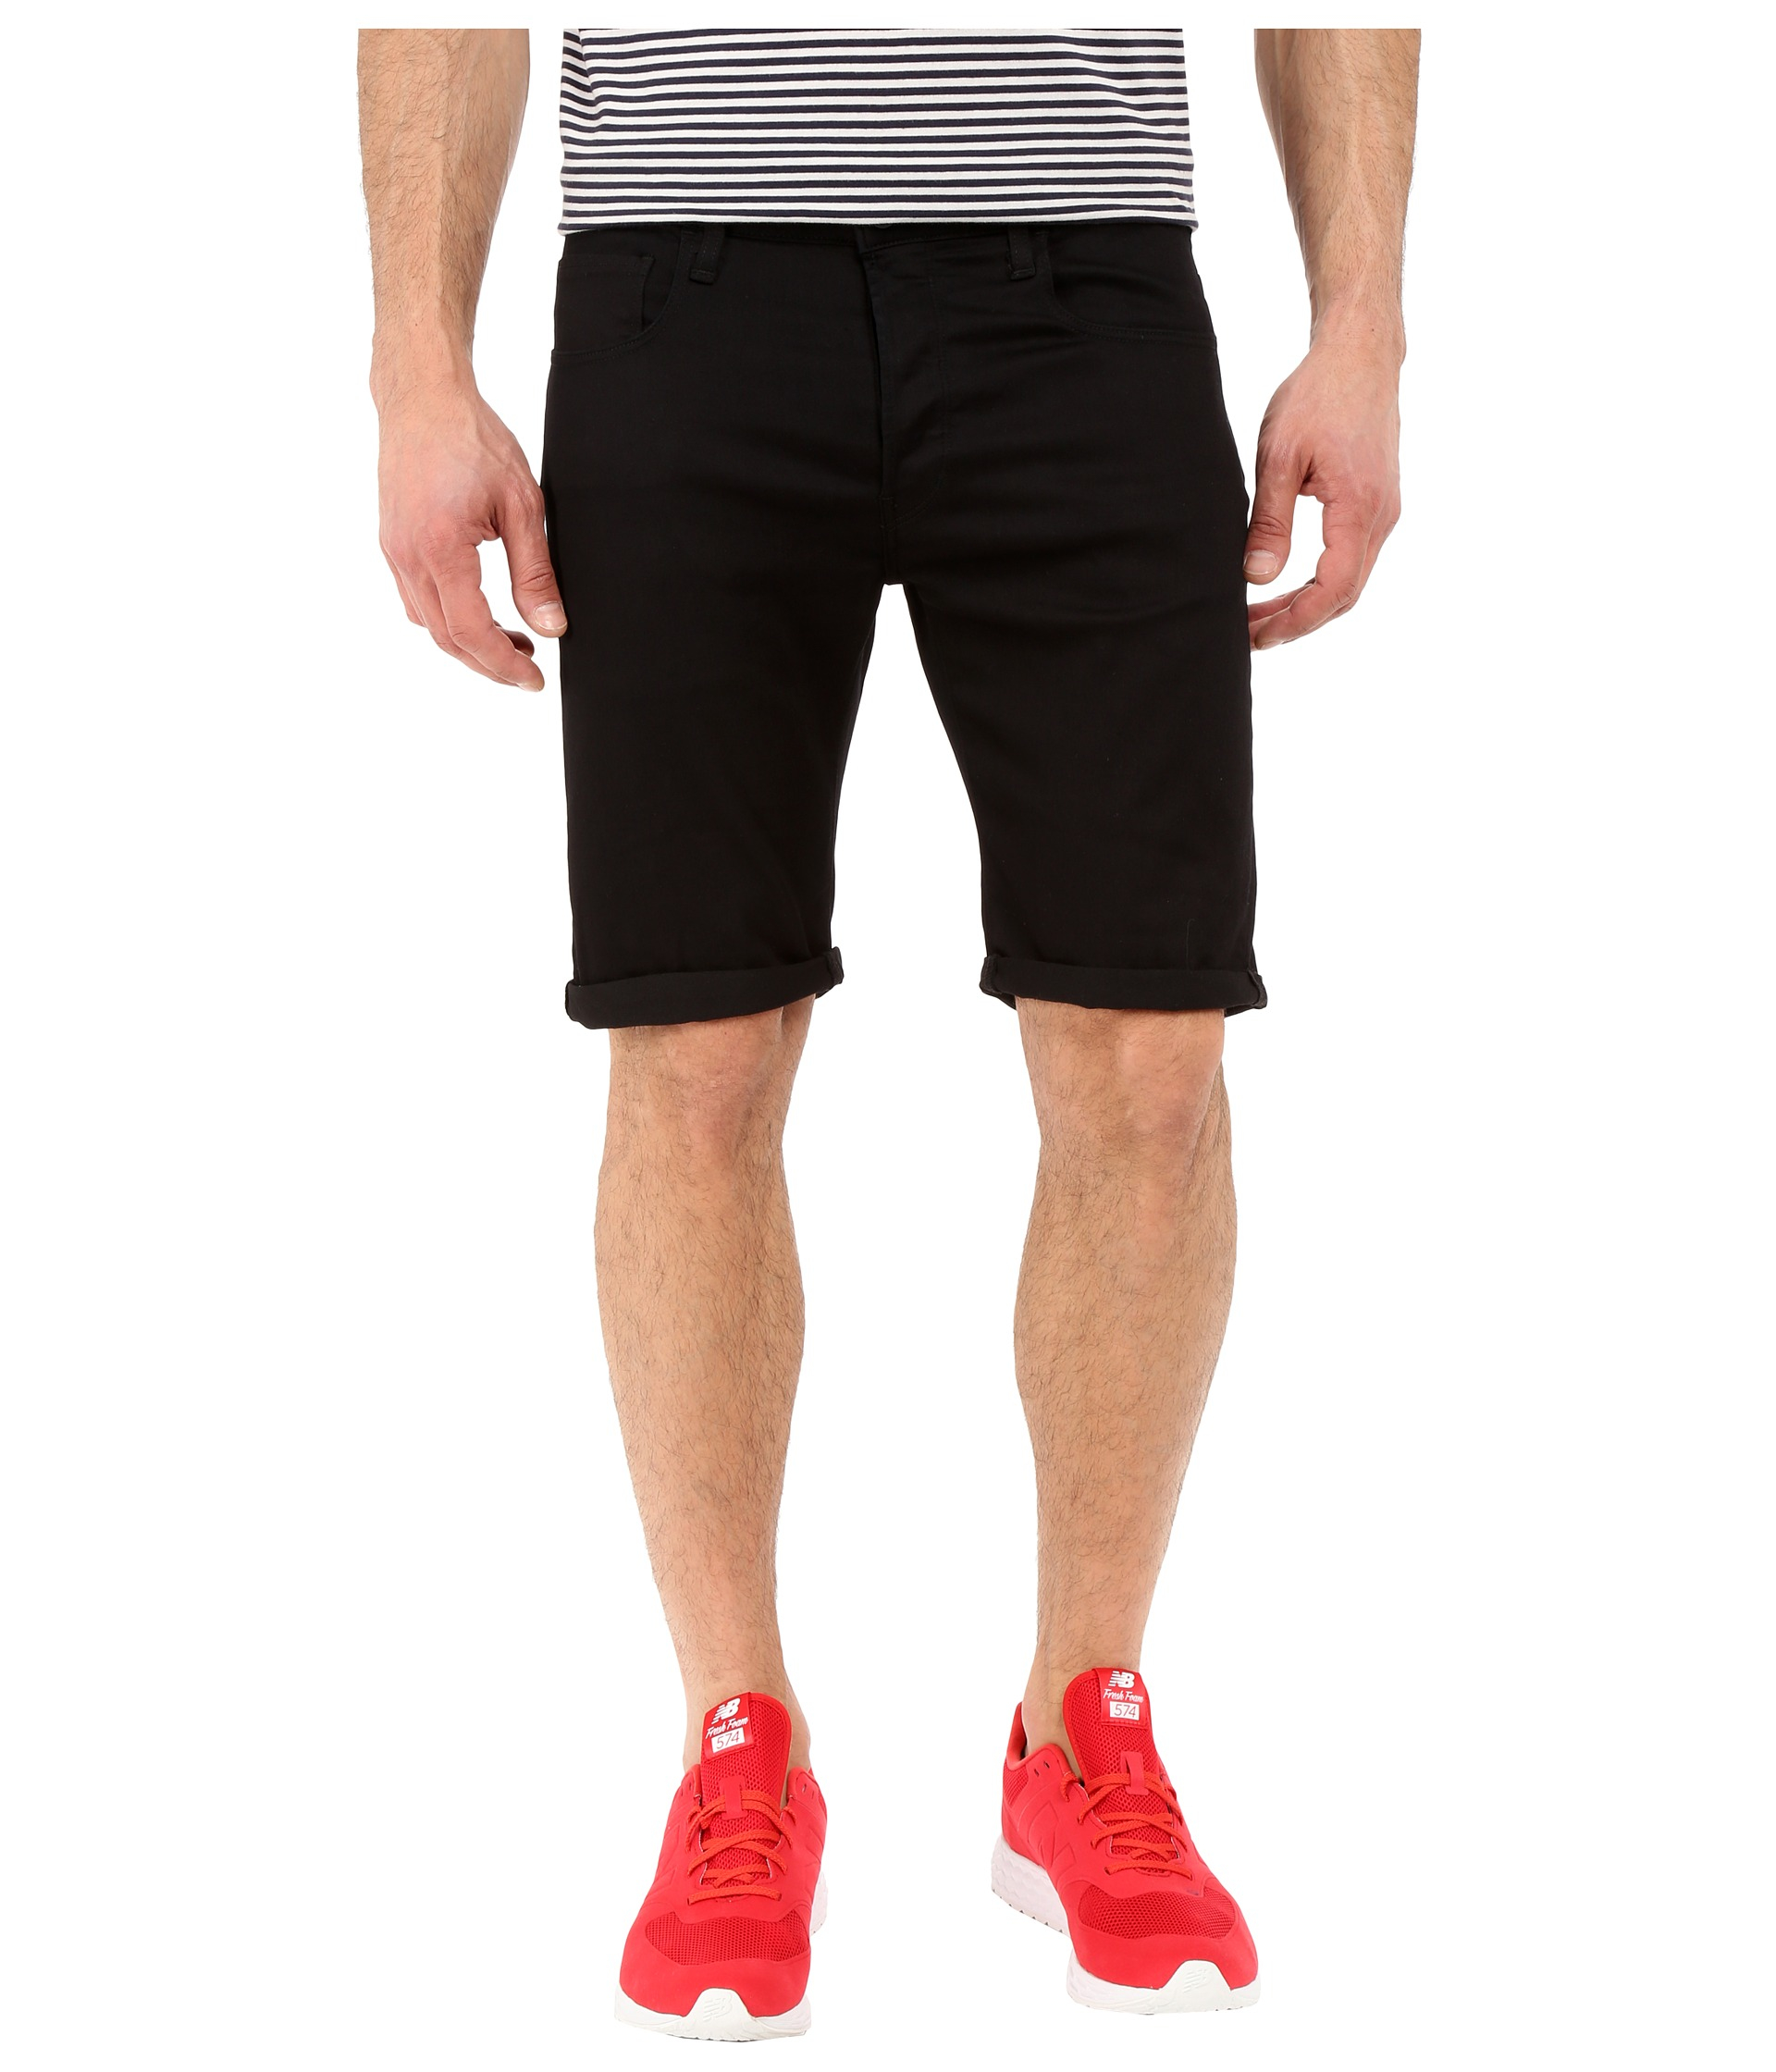 Mens 3301 Deconstructed Shorts G-Star